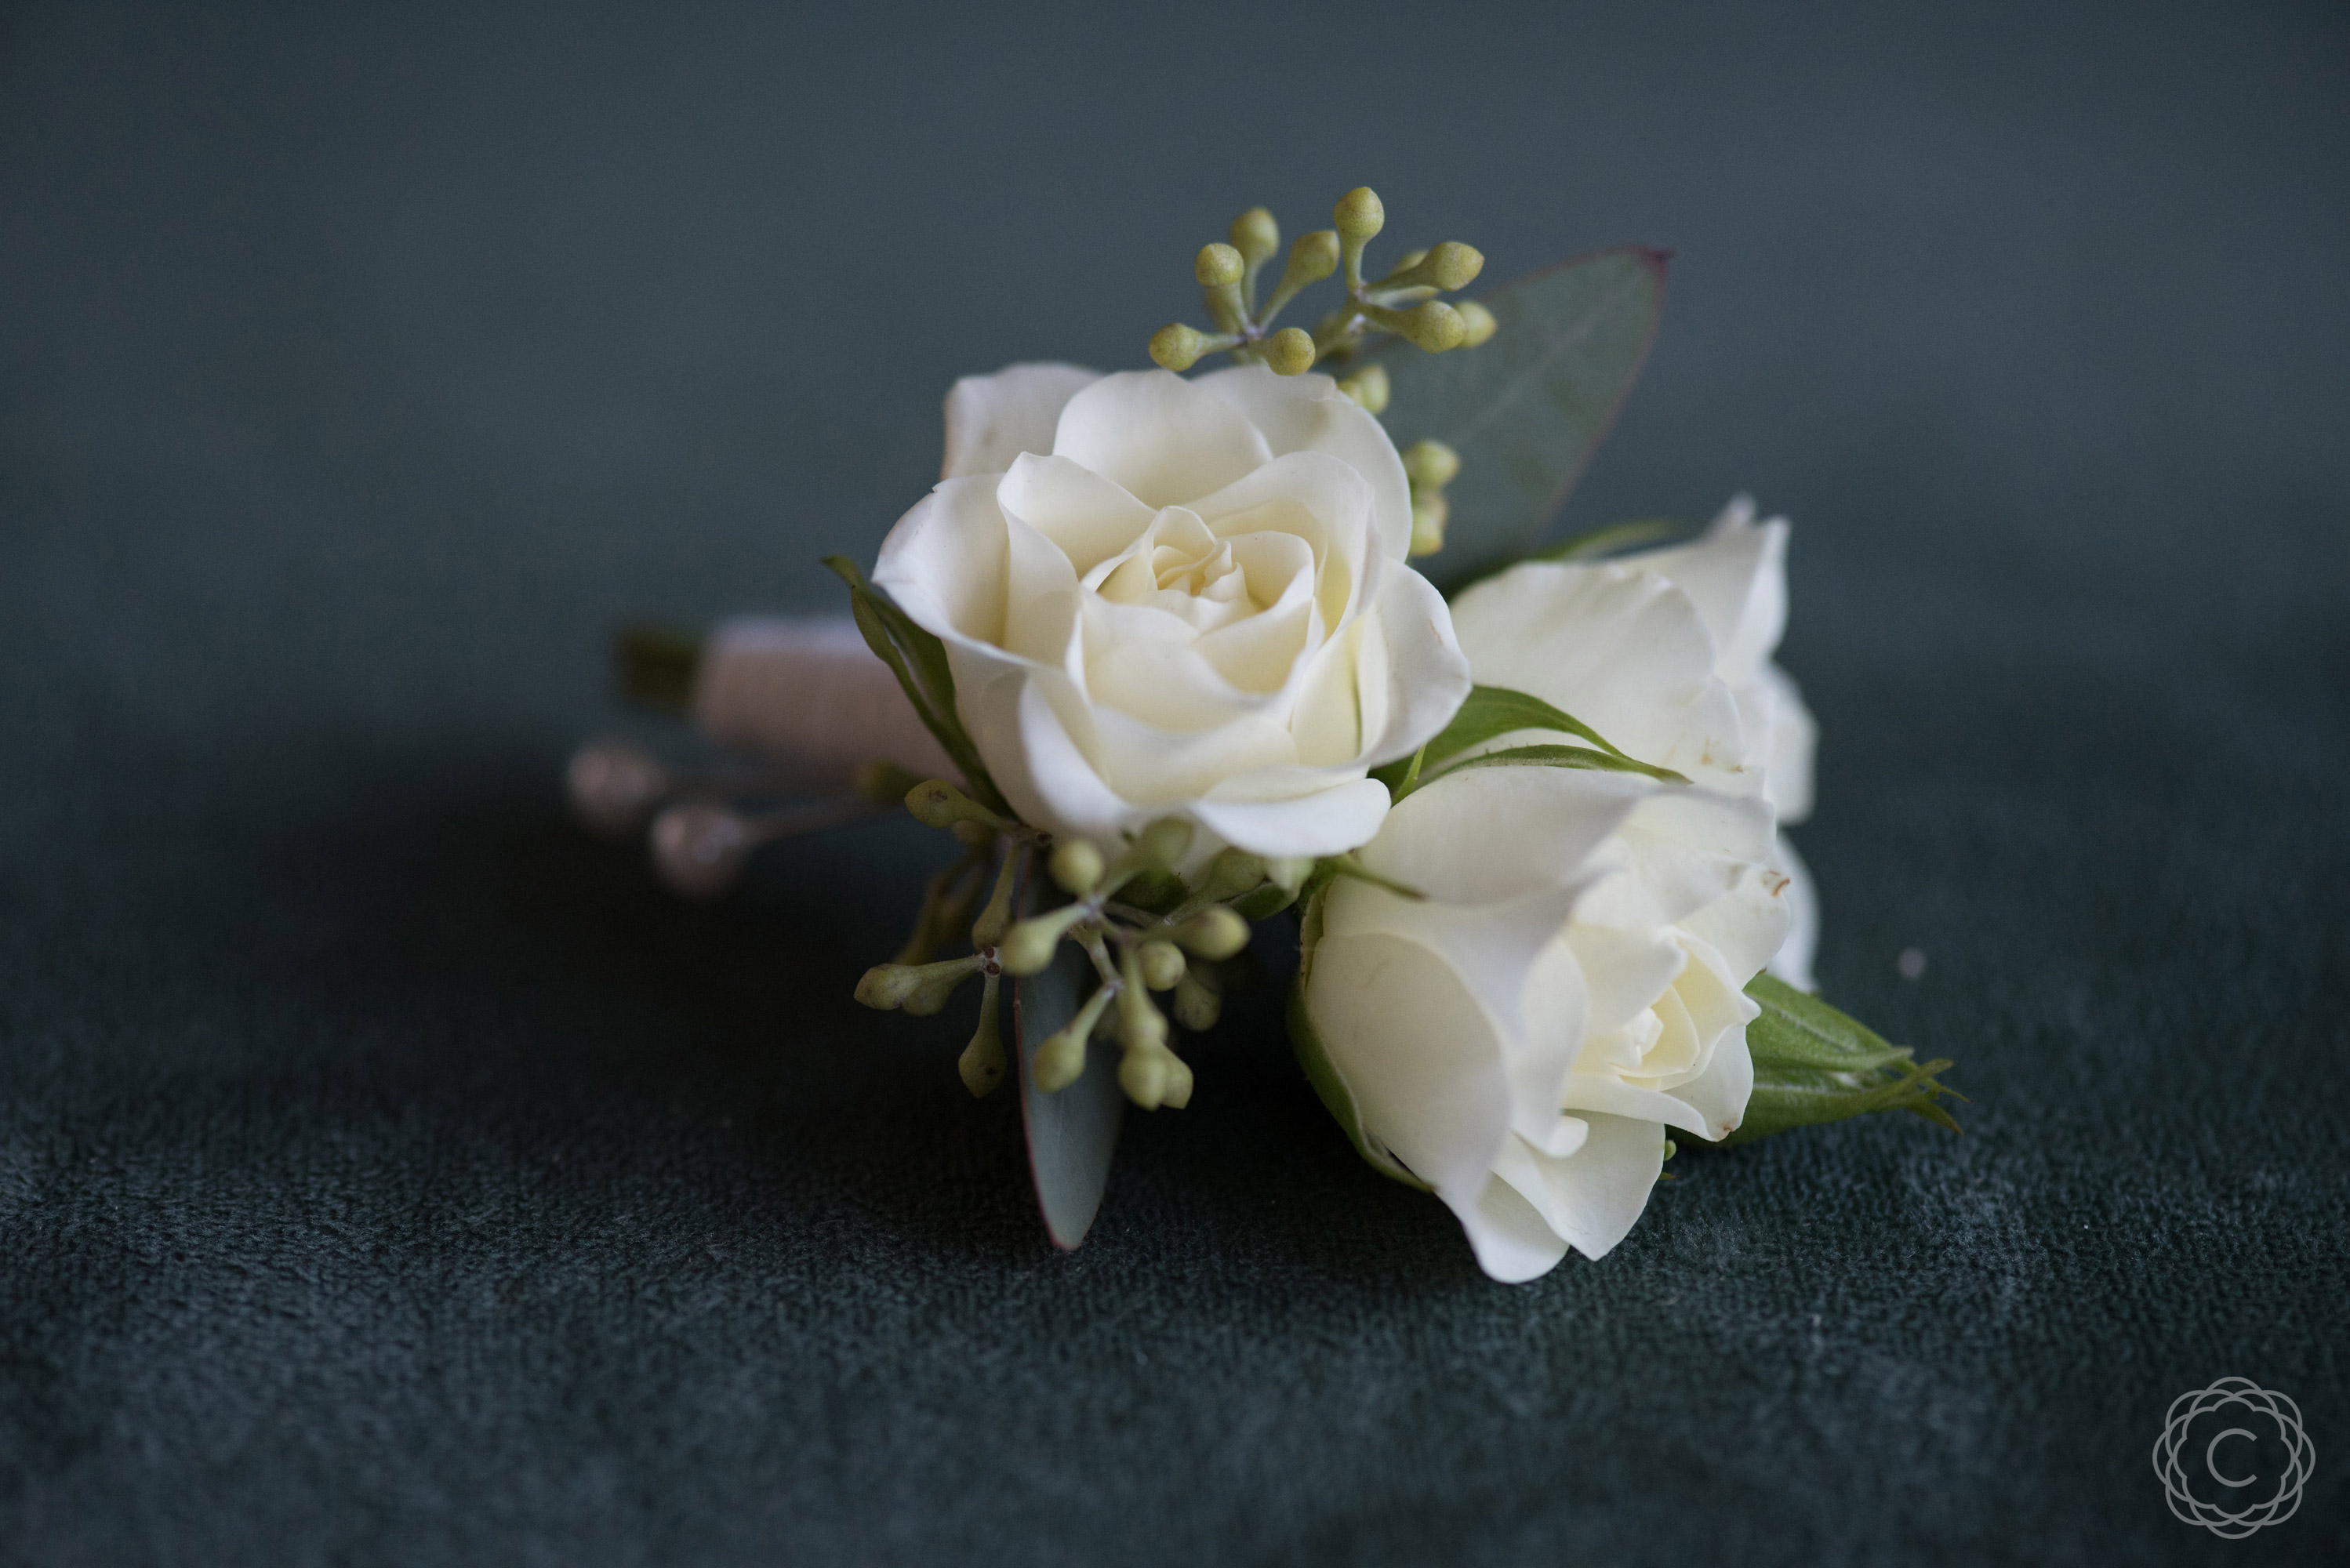 Simple White Spray Rose Boutonniere | Calyx Floral DesignWhite Spray Rose Boutonniere